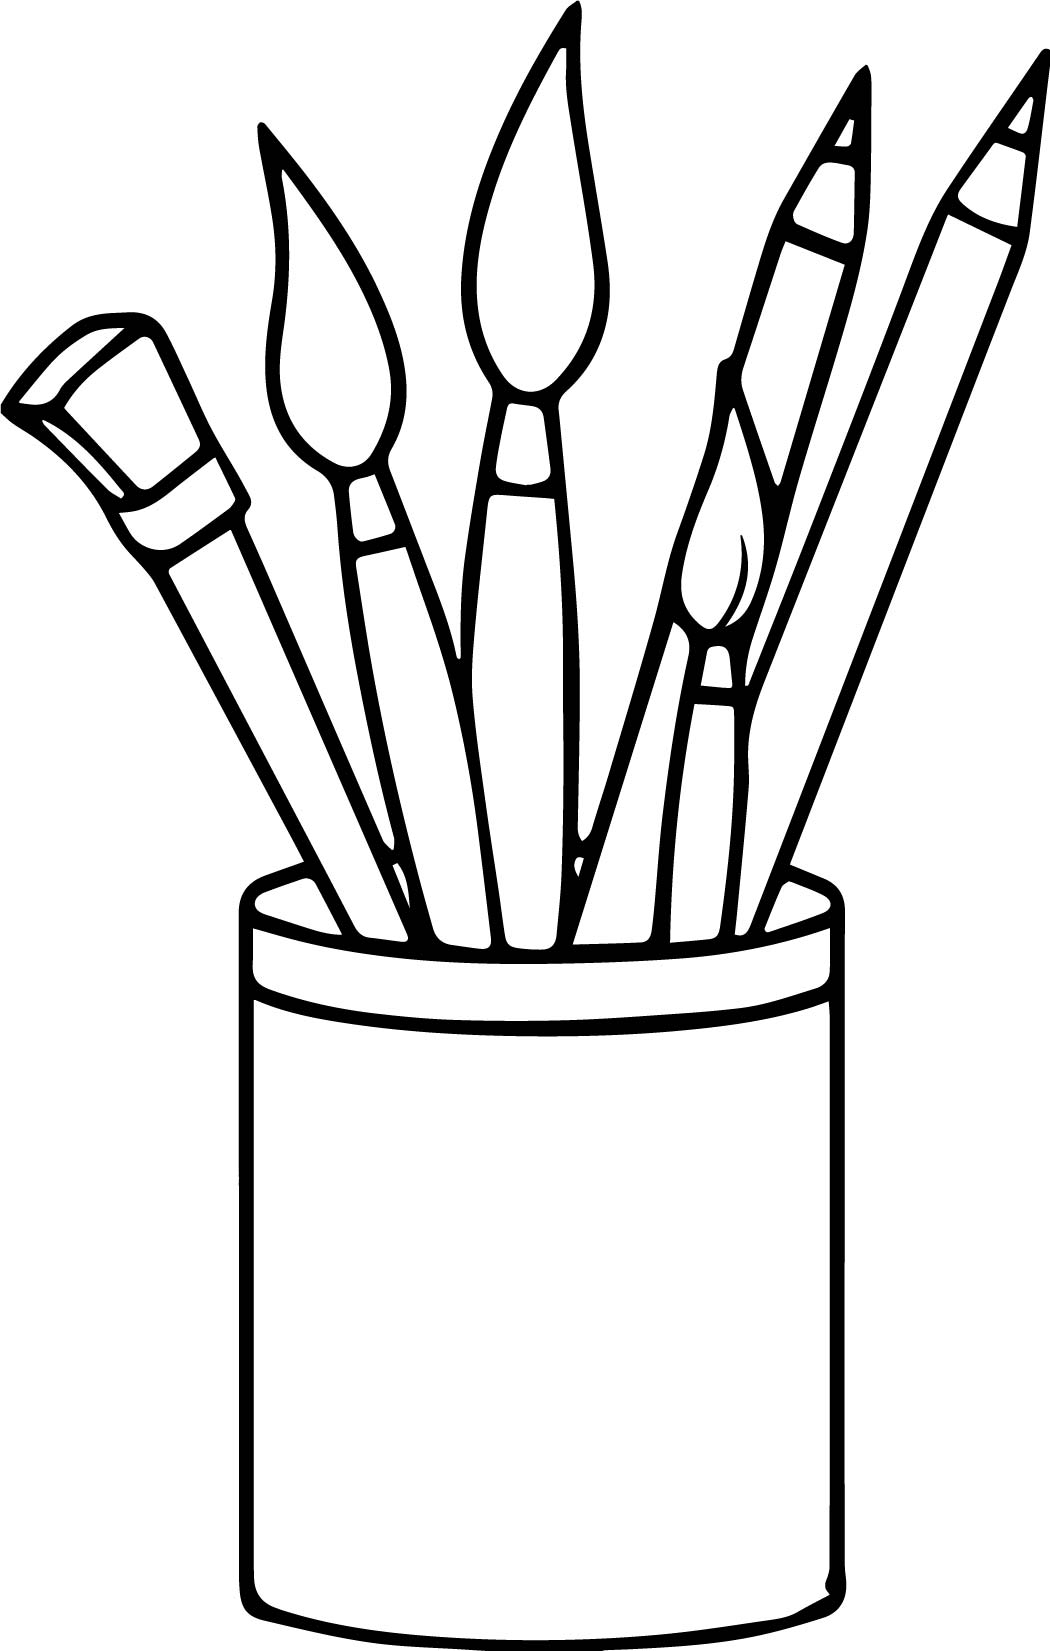 coloring pencils clipart free picture of pencil download free clip art free clip pencils clipart coloring